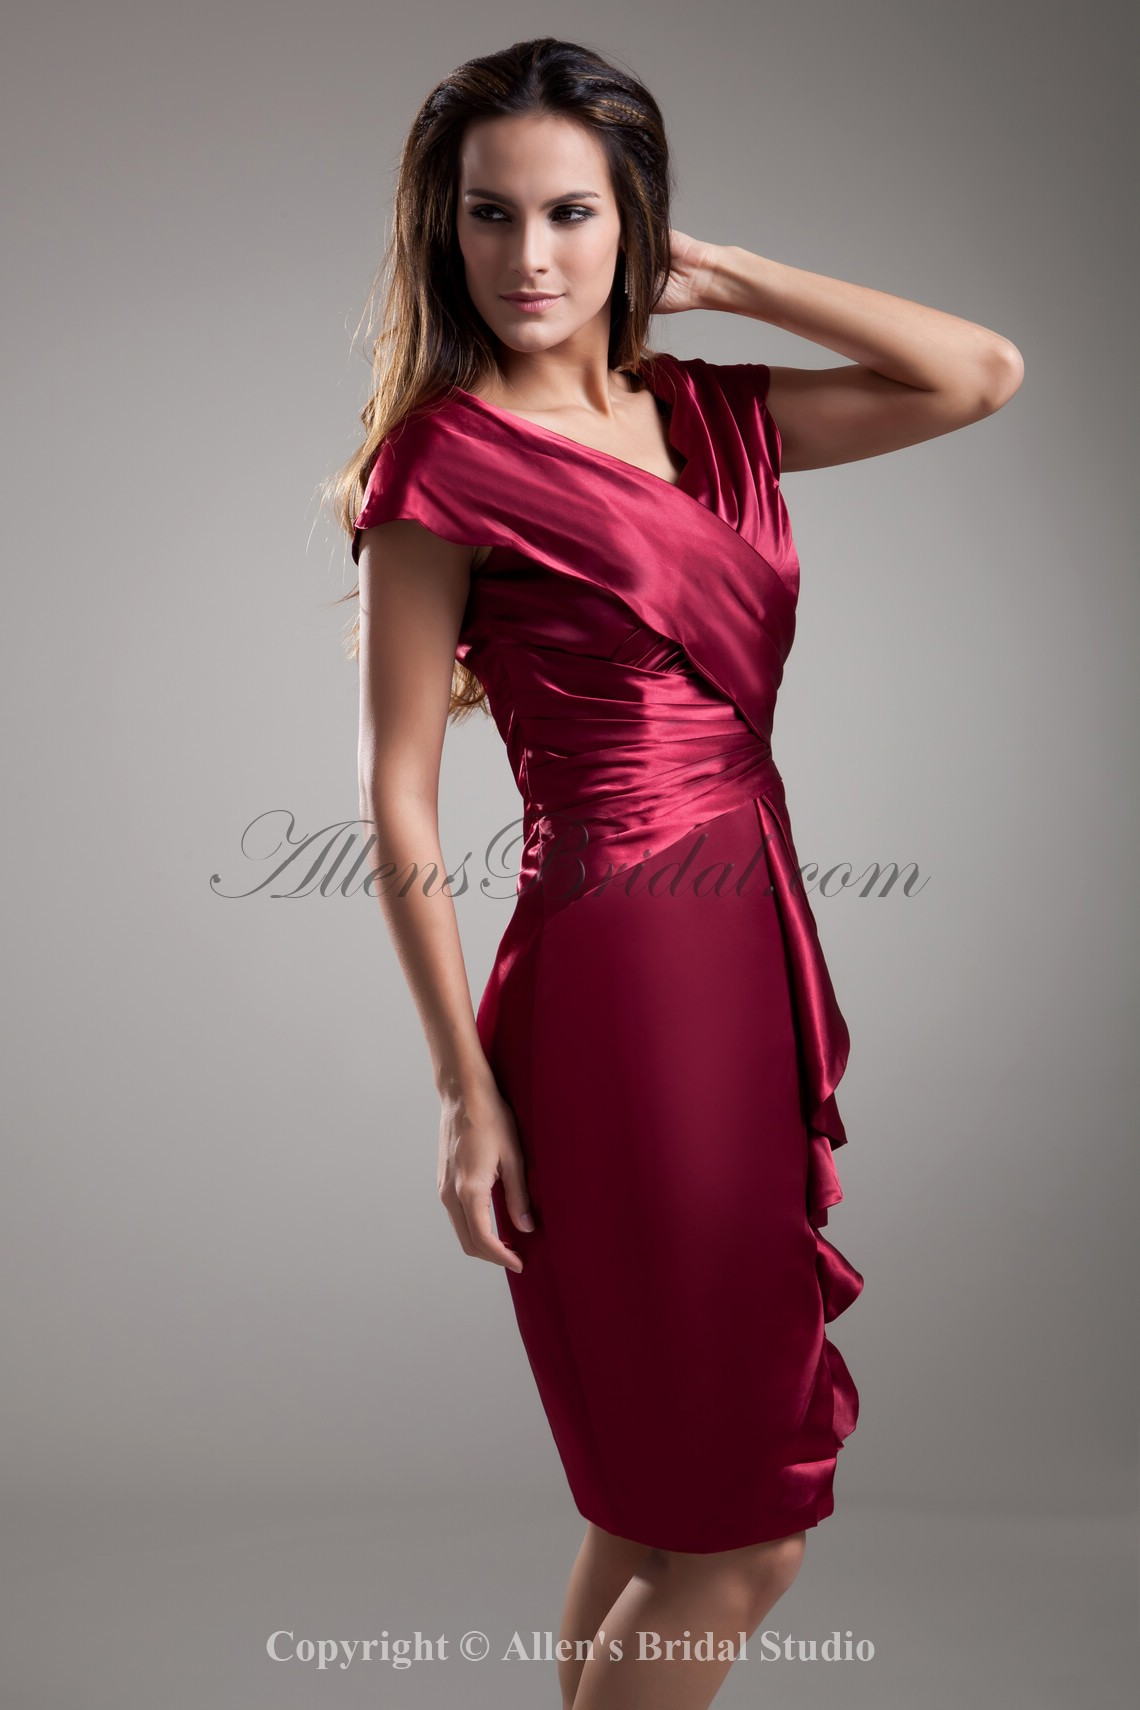 /711-5695/satin-v-neck-neckline-knee-length-sheath-cap-sleeves-cocktail-dress.jpg